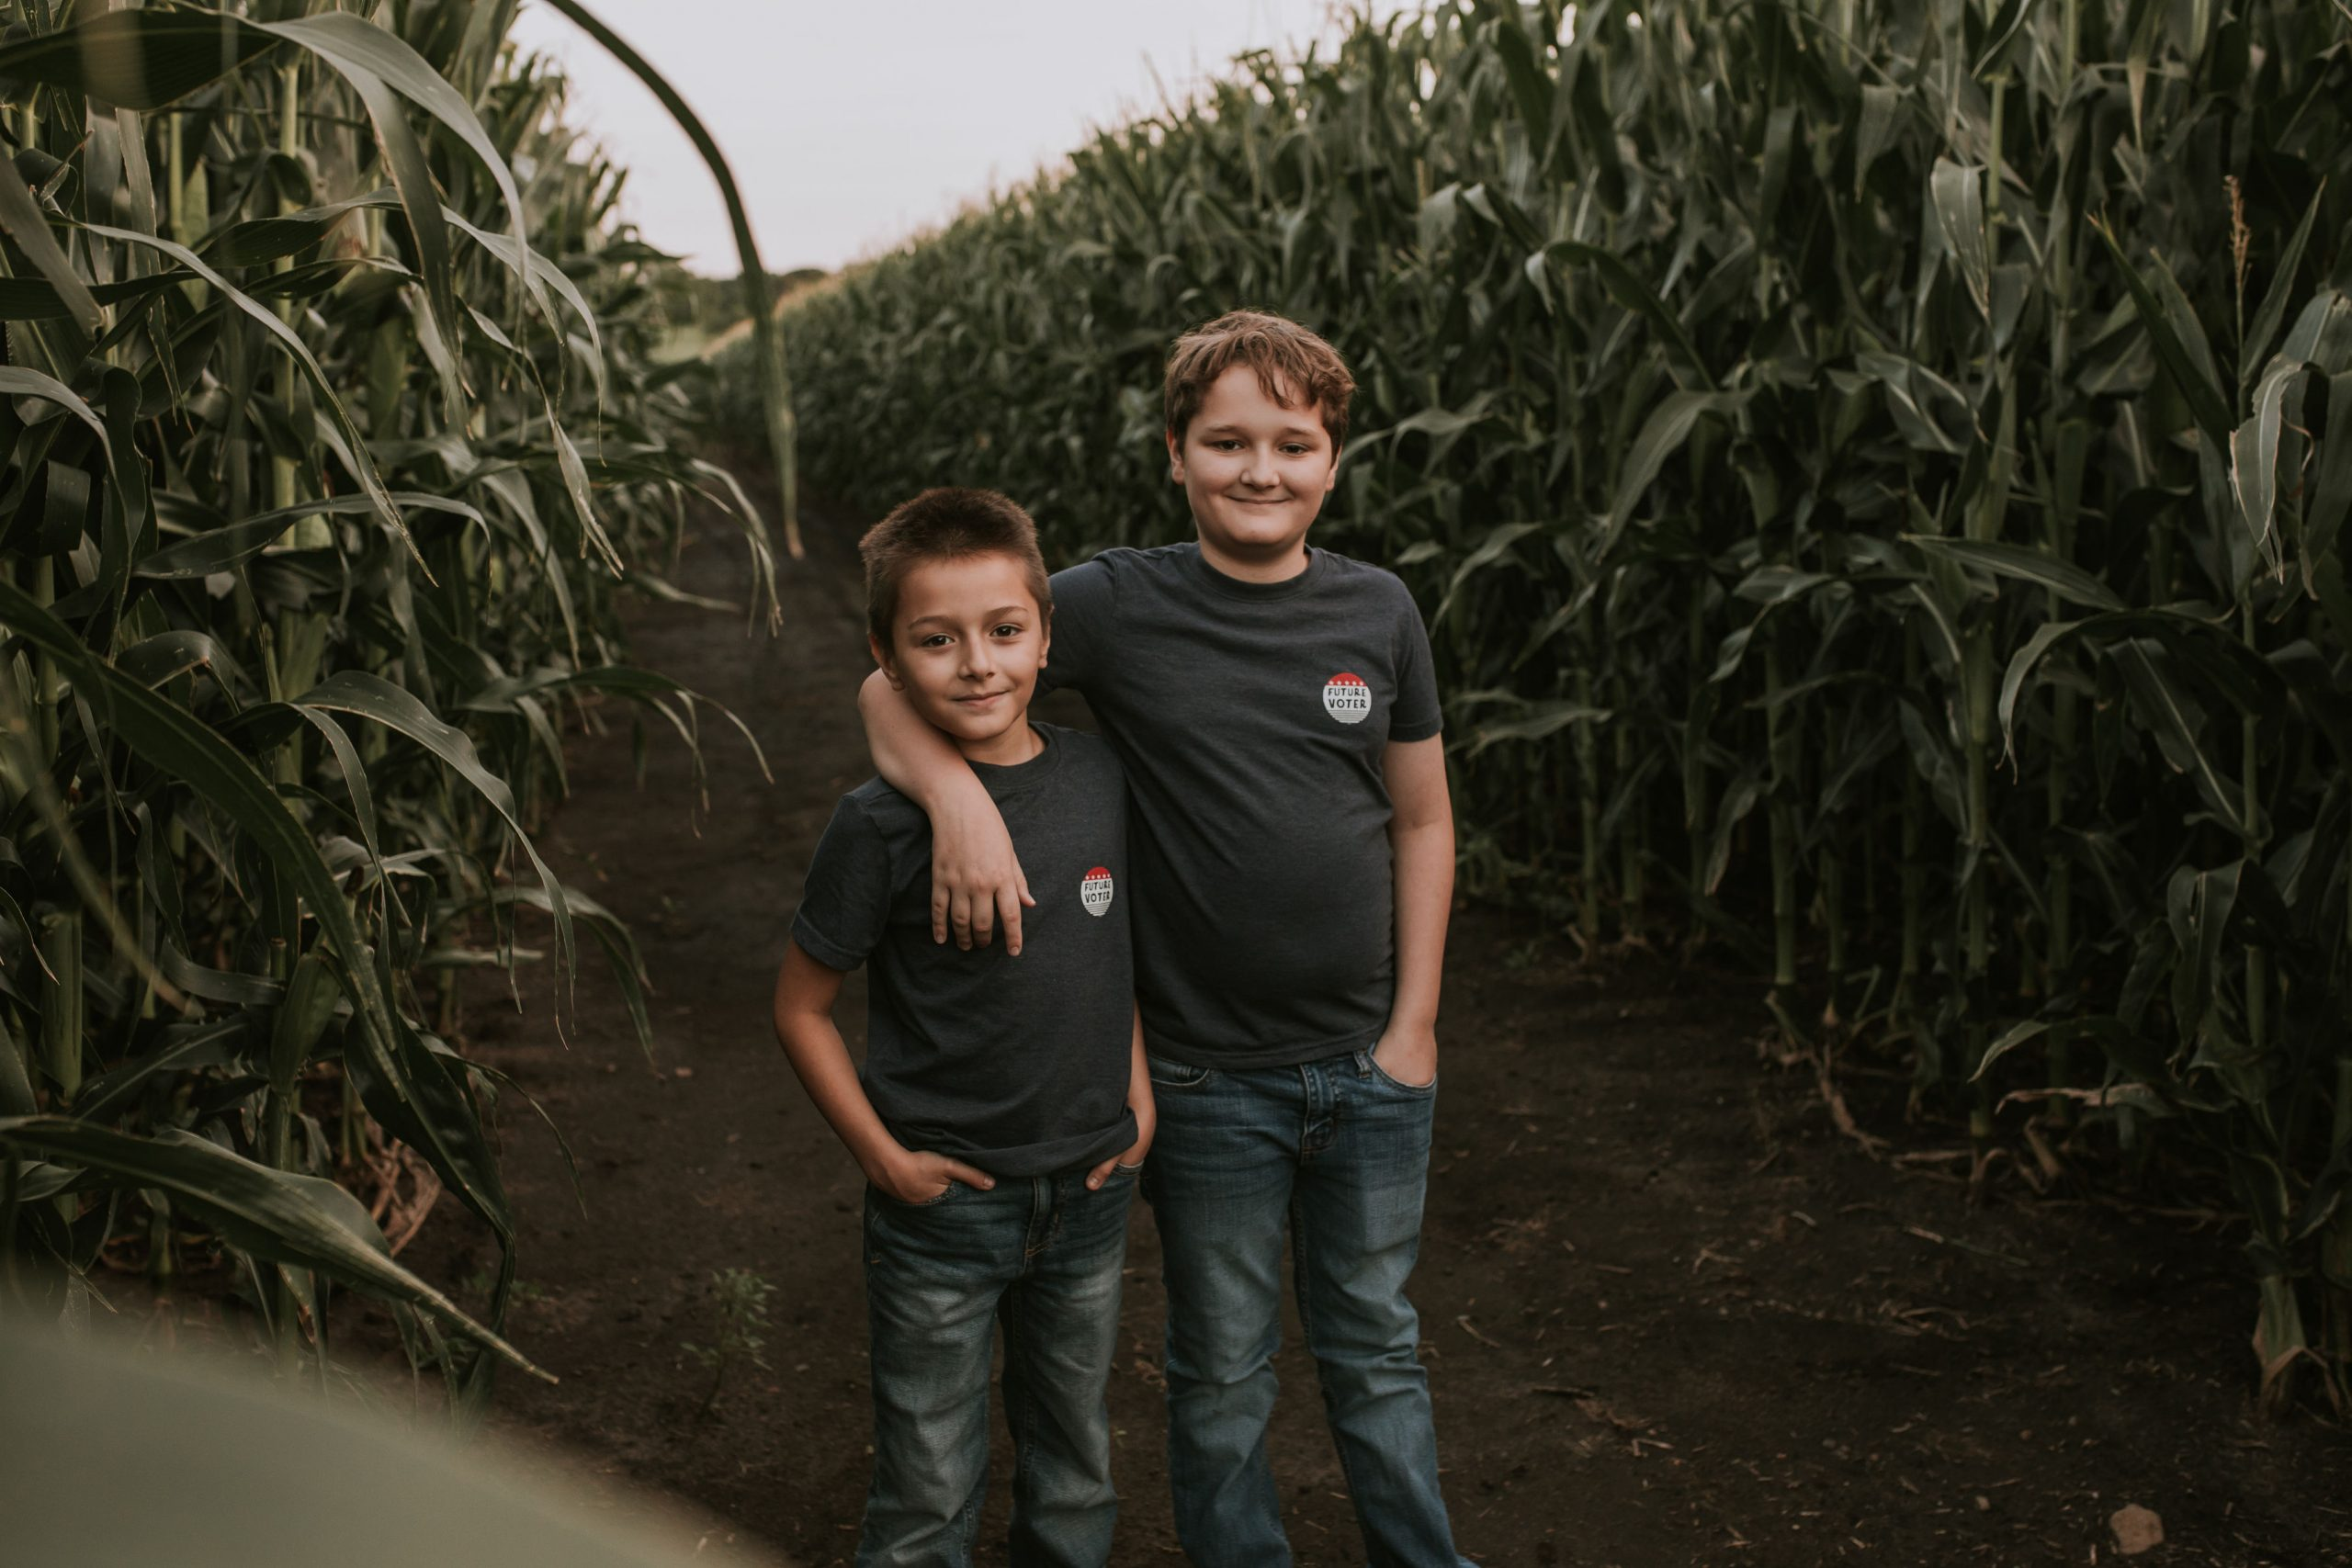 https://katywestlund.com/wp-content/uploads/sites/3/2020/09/boys-in-corn-field-scaled.jpg